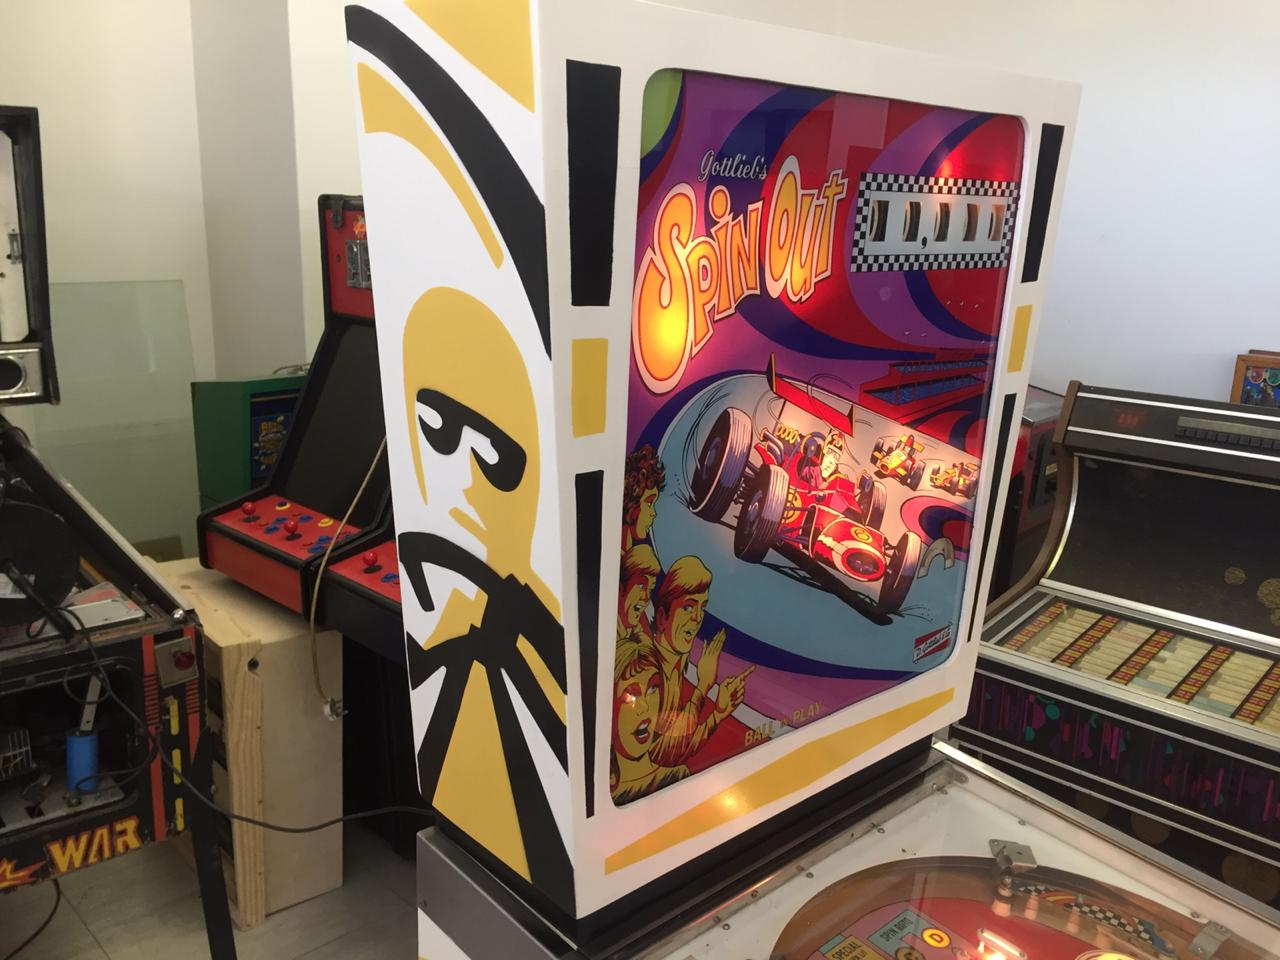 Spin Out by Gottlieb , a 1 player pinball machine